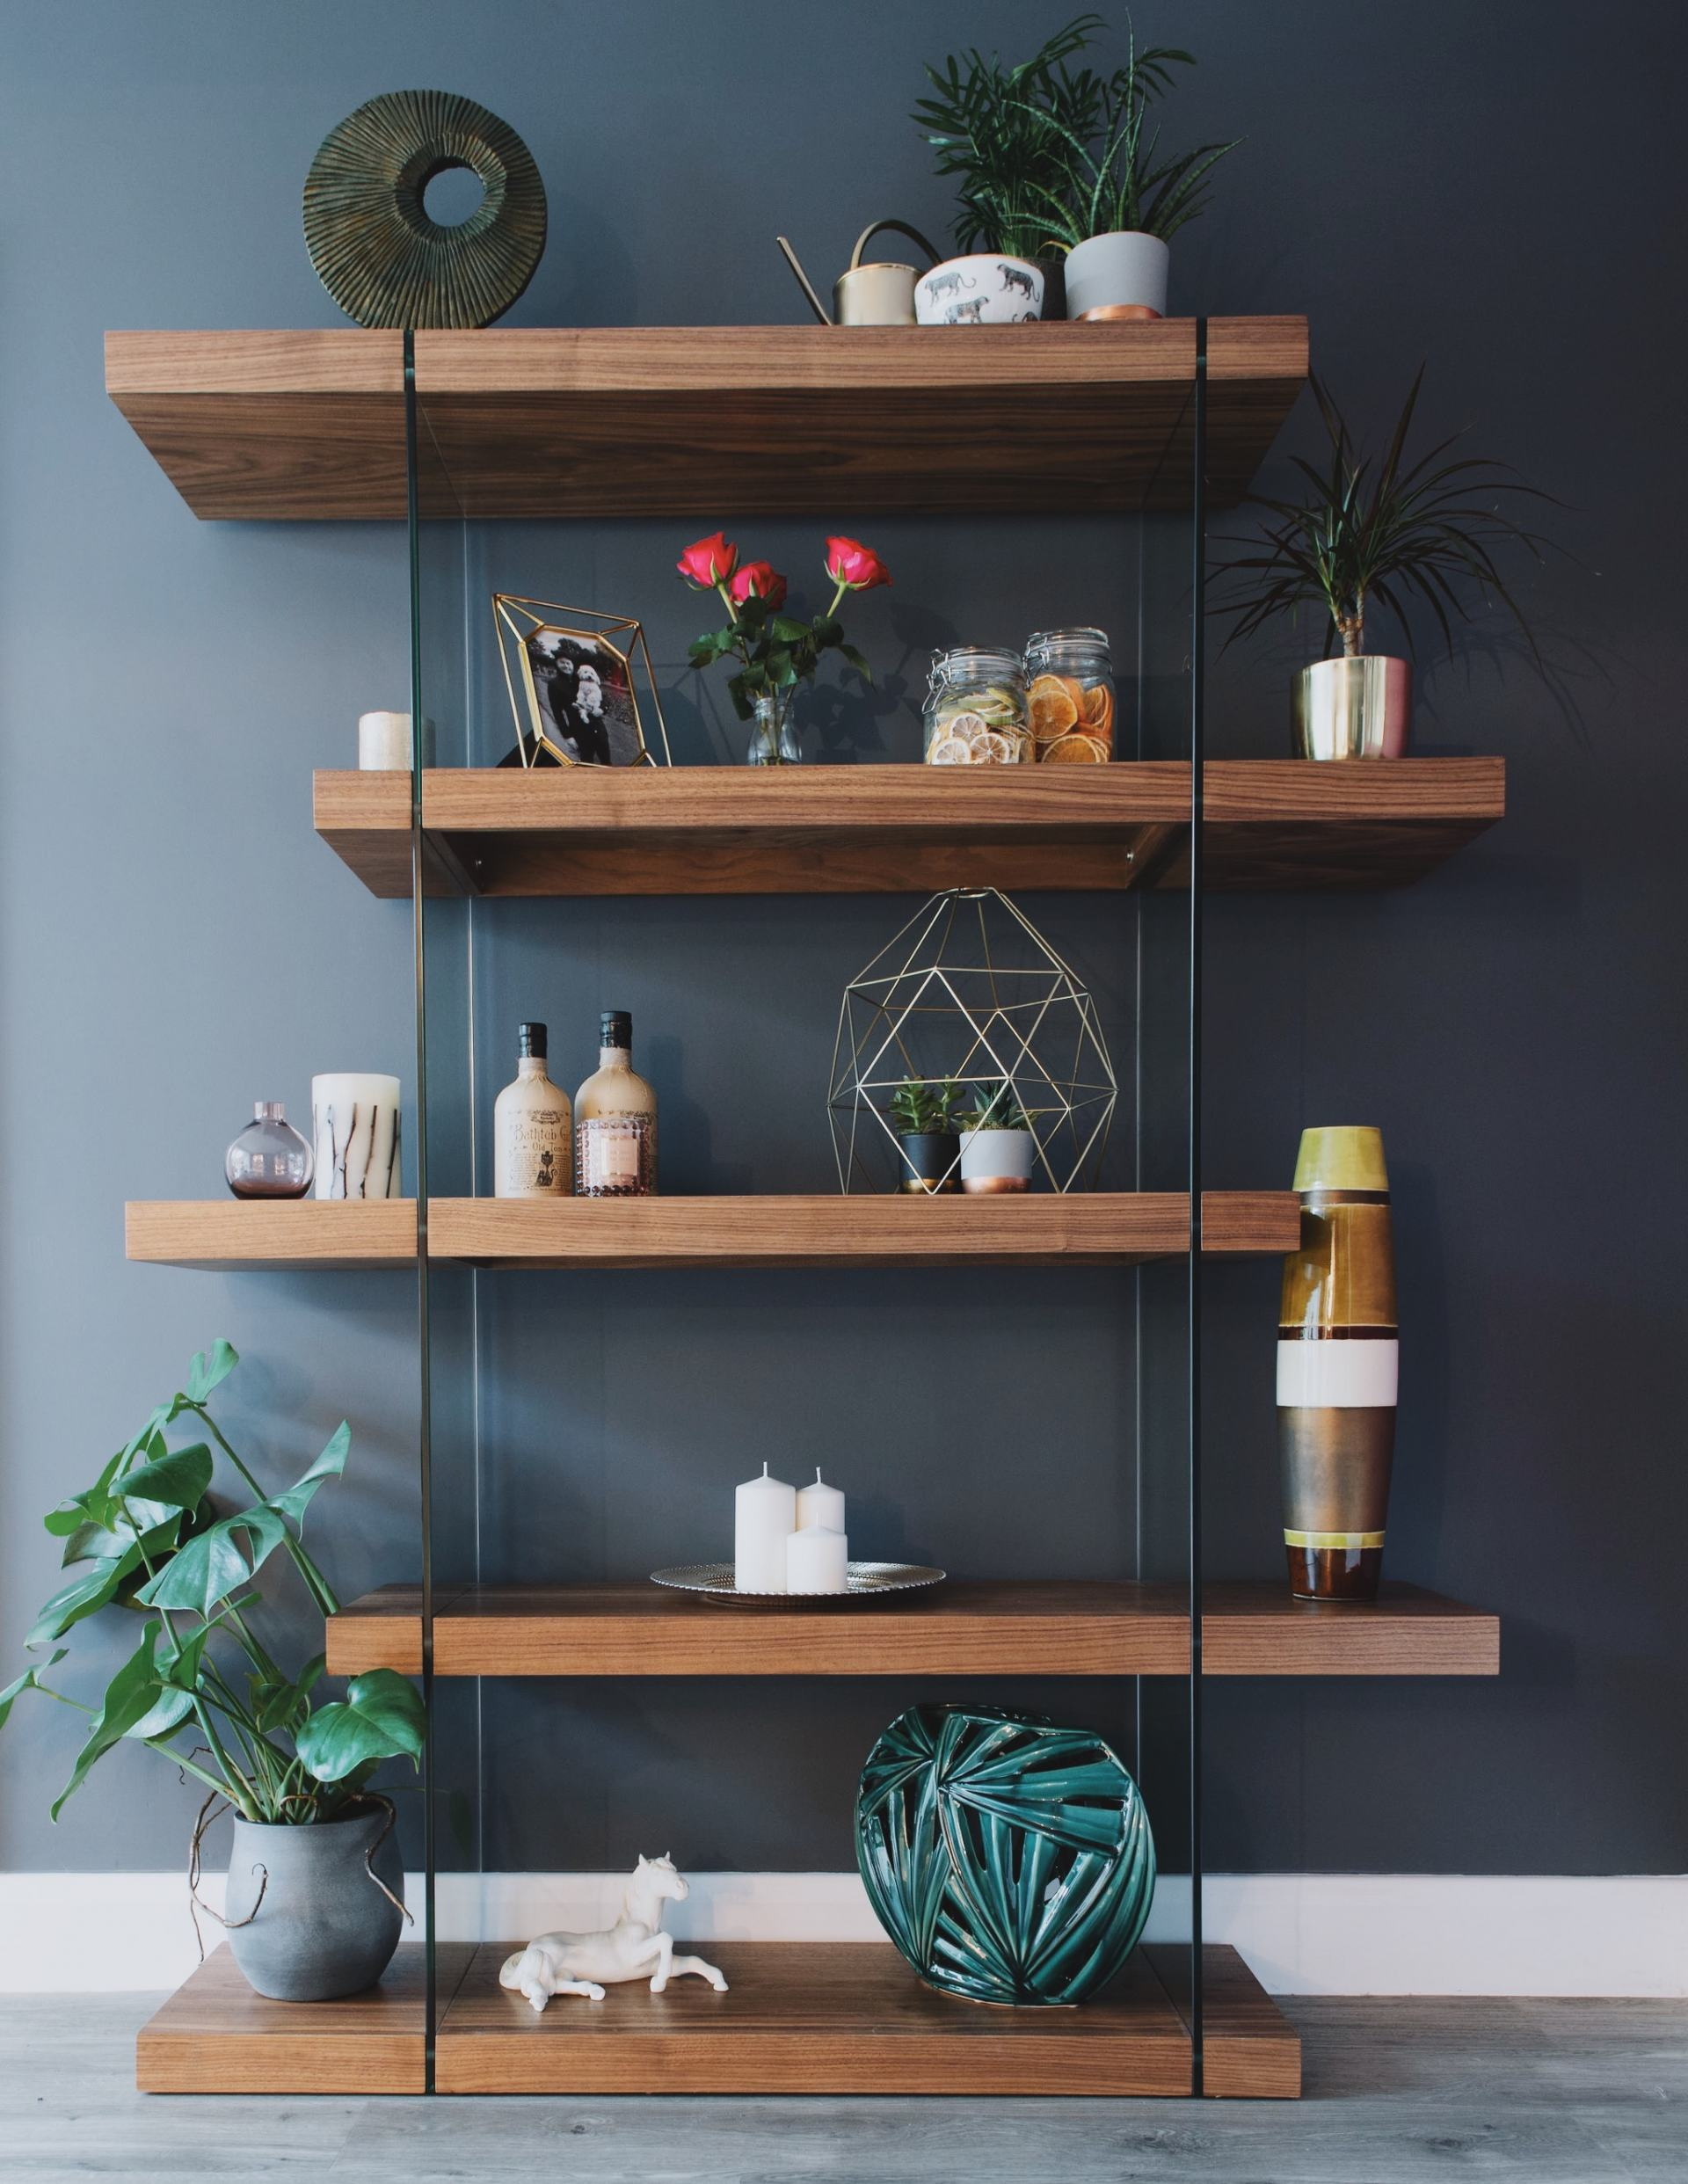 A bookcase displaying real plants and pictures with other artefacts